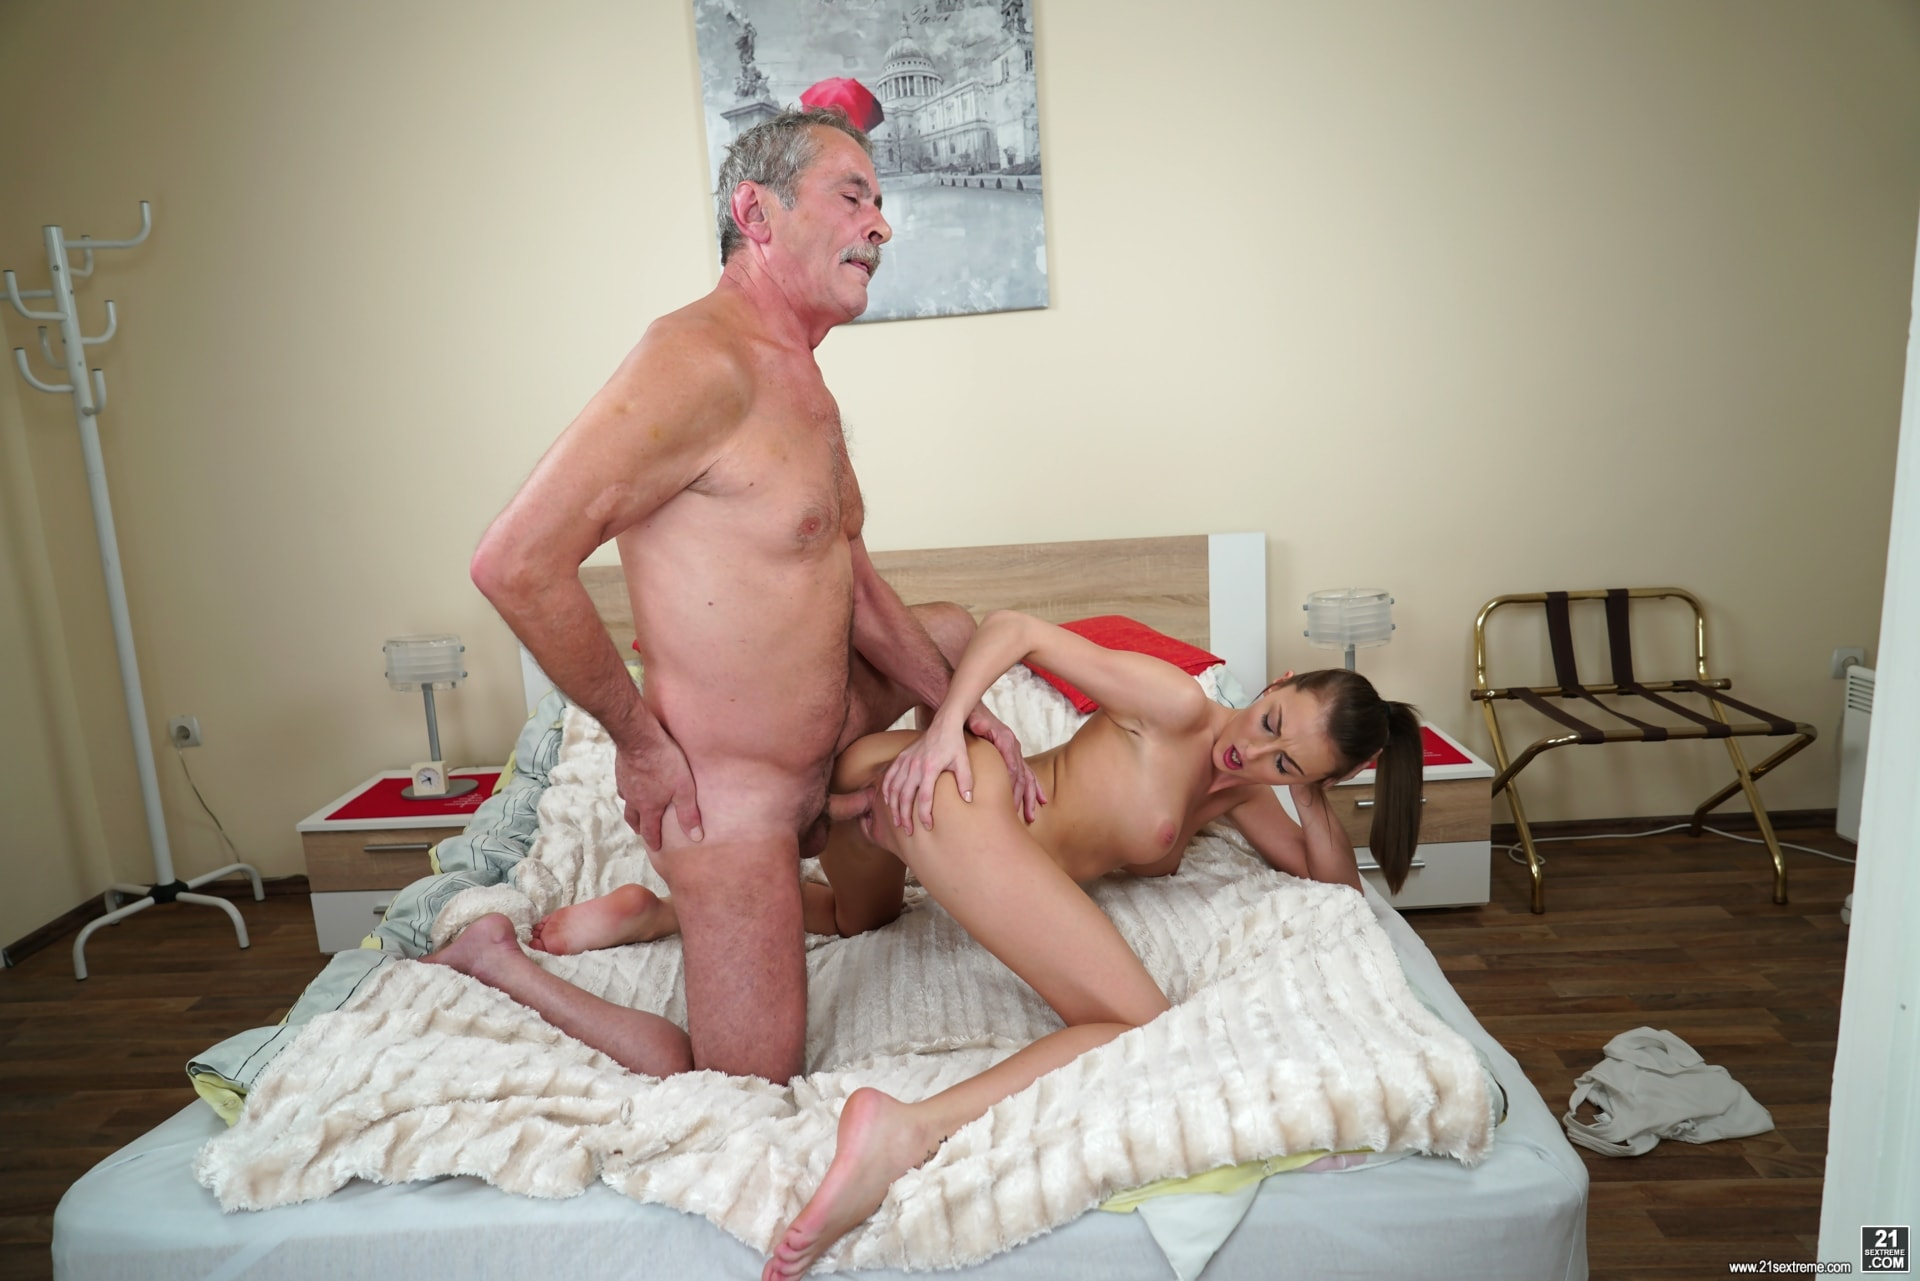 21Sextury 'Old Cock Meets Young Pussy' starring Katy Rose (Photo 143)